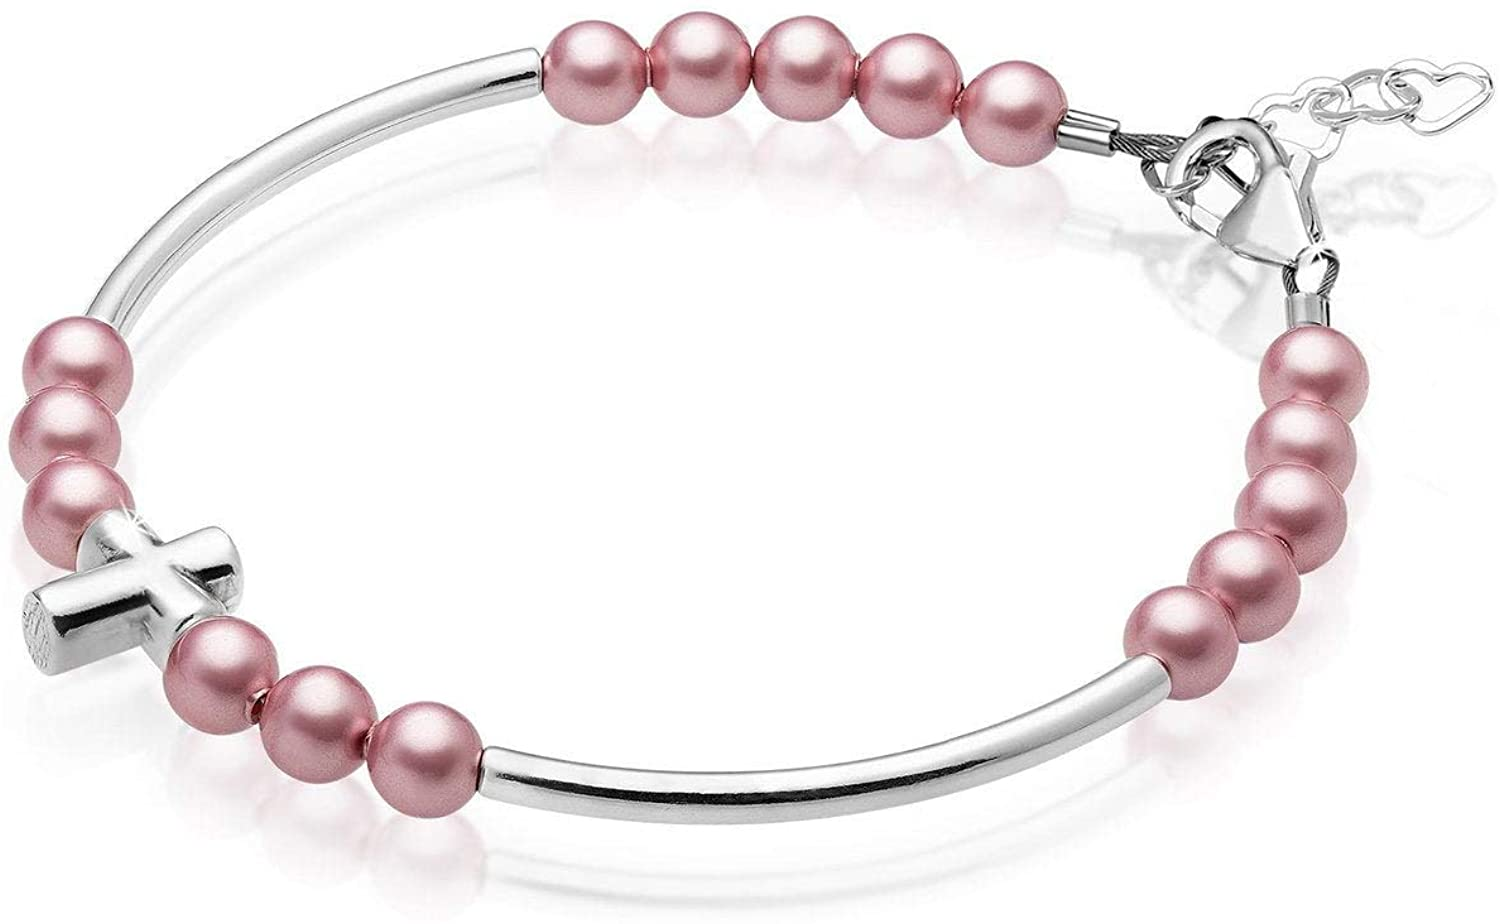 Luxury Child Banglet Bracelet with Silver Cross and Dark Pink Pearls (BD26)